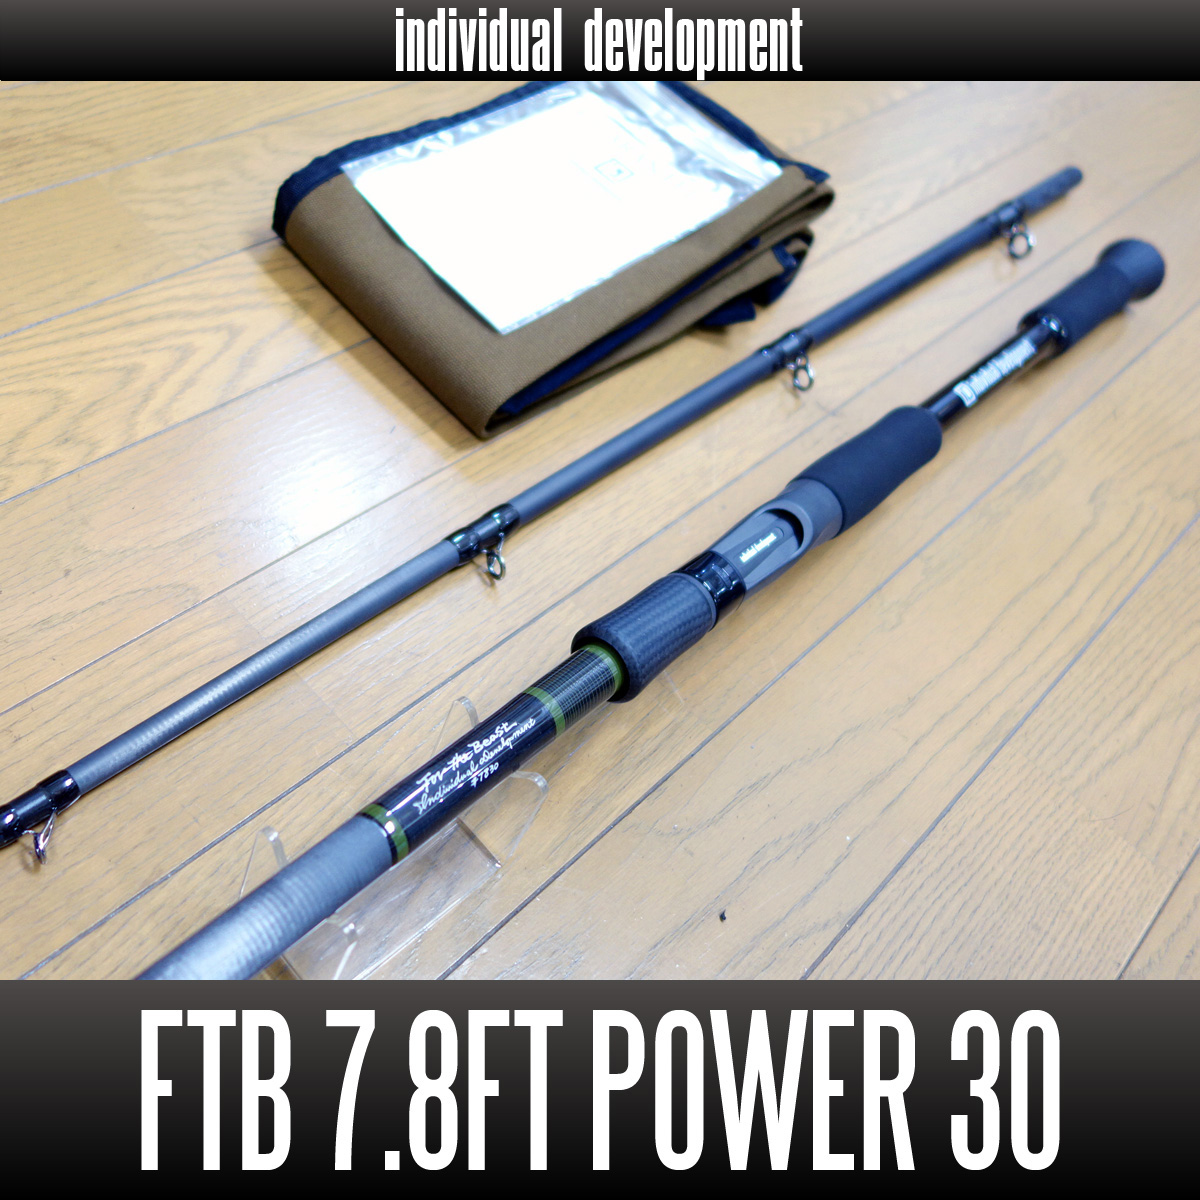 【ID/individual development】 FTB for THE BEAST 7.8ft Power 30 (FTB7830) ※ラバーグリップ仕様